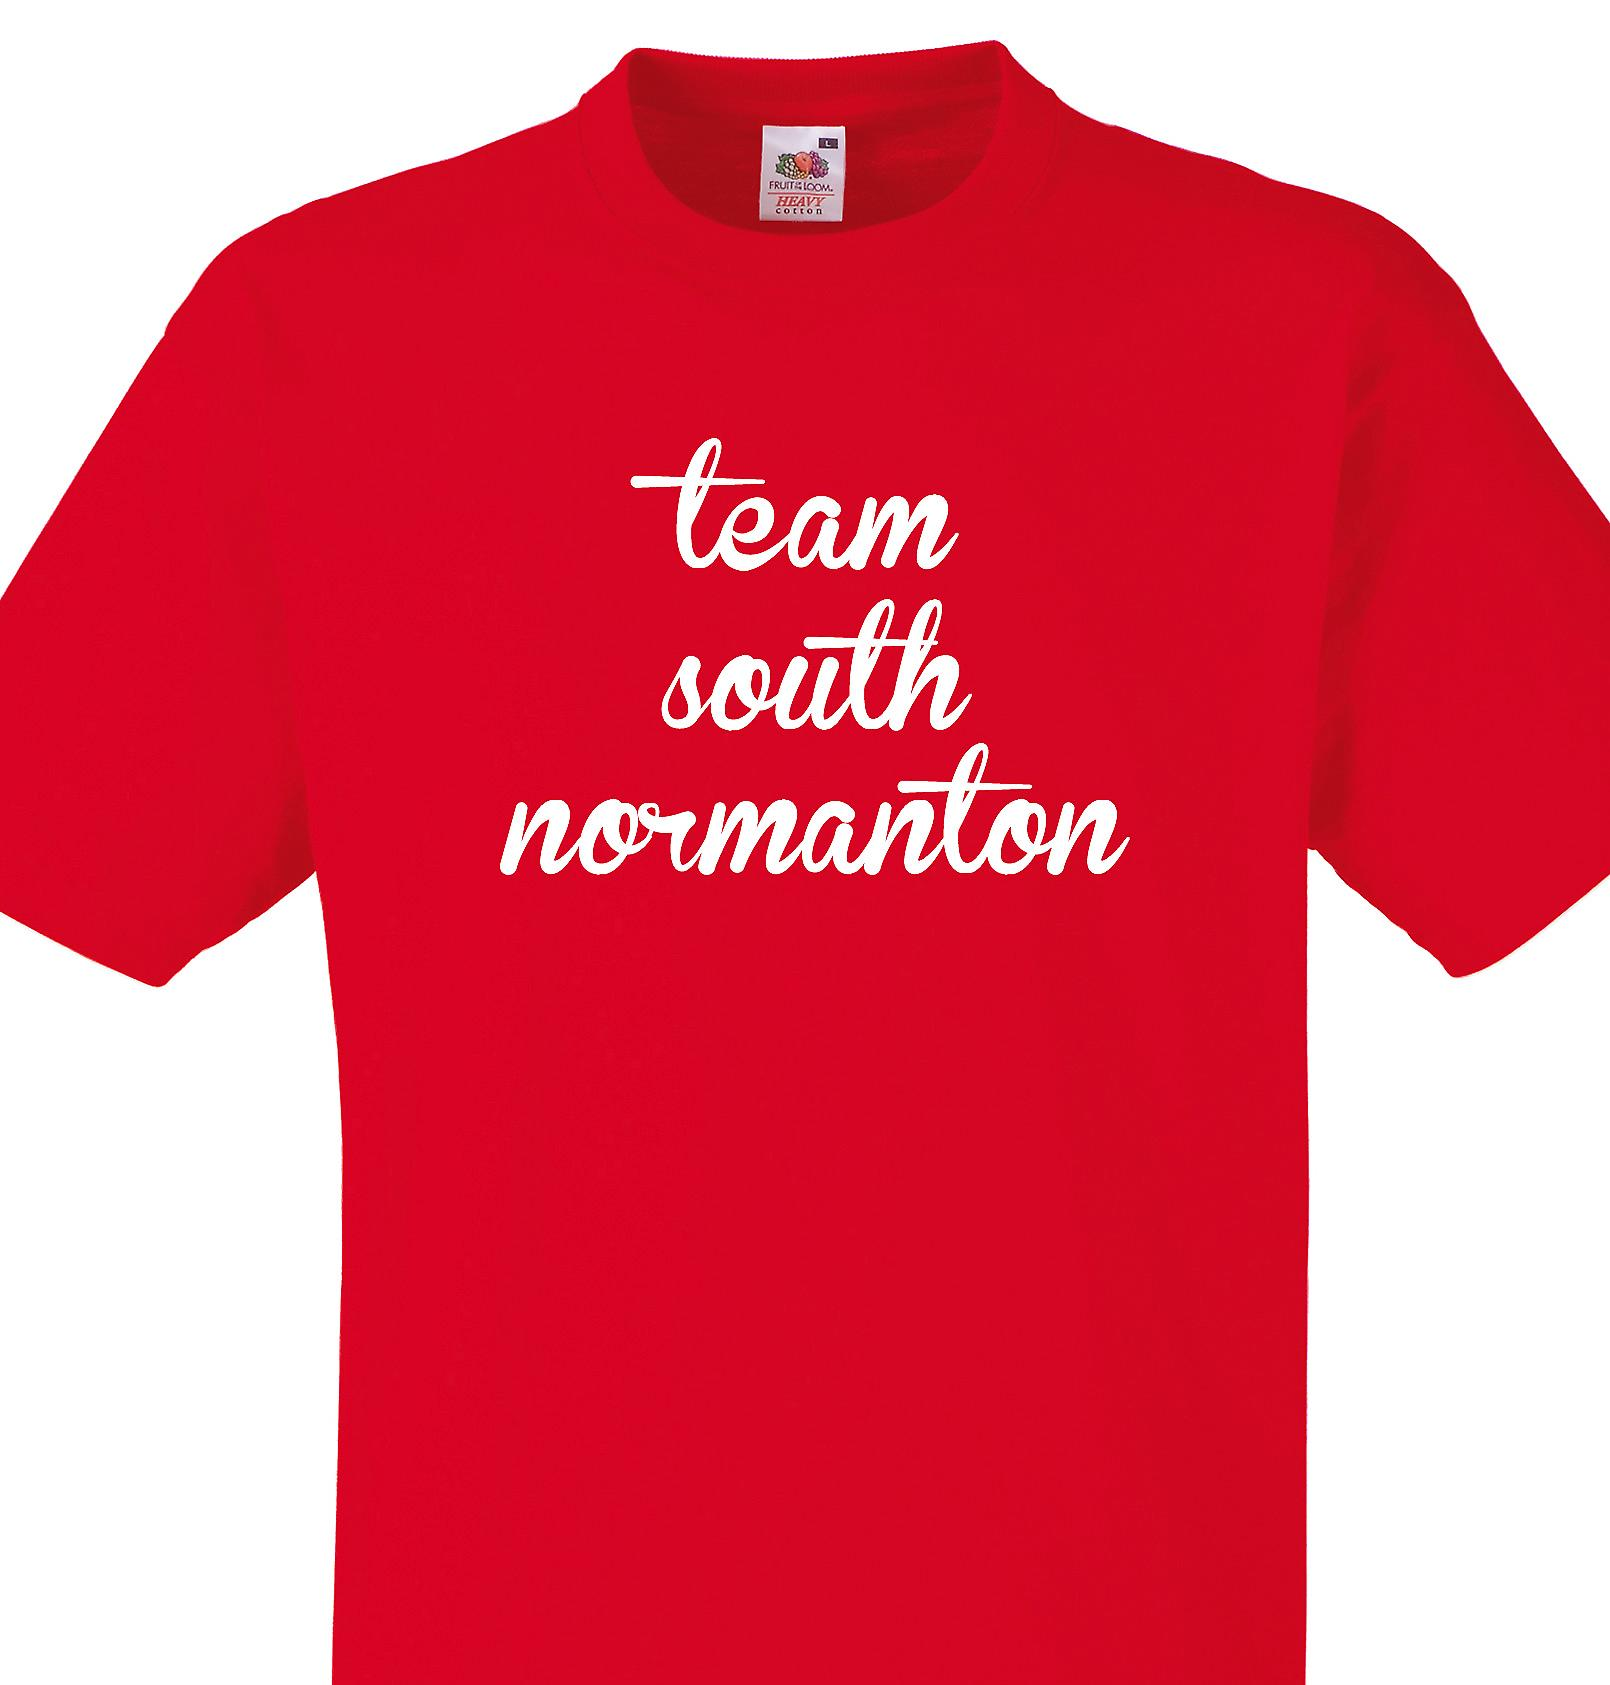 Team South normanton Red T shirt